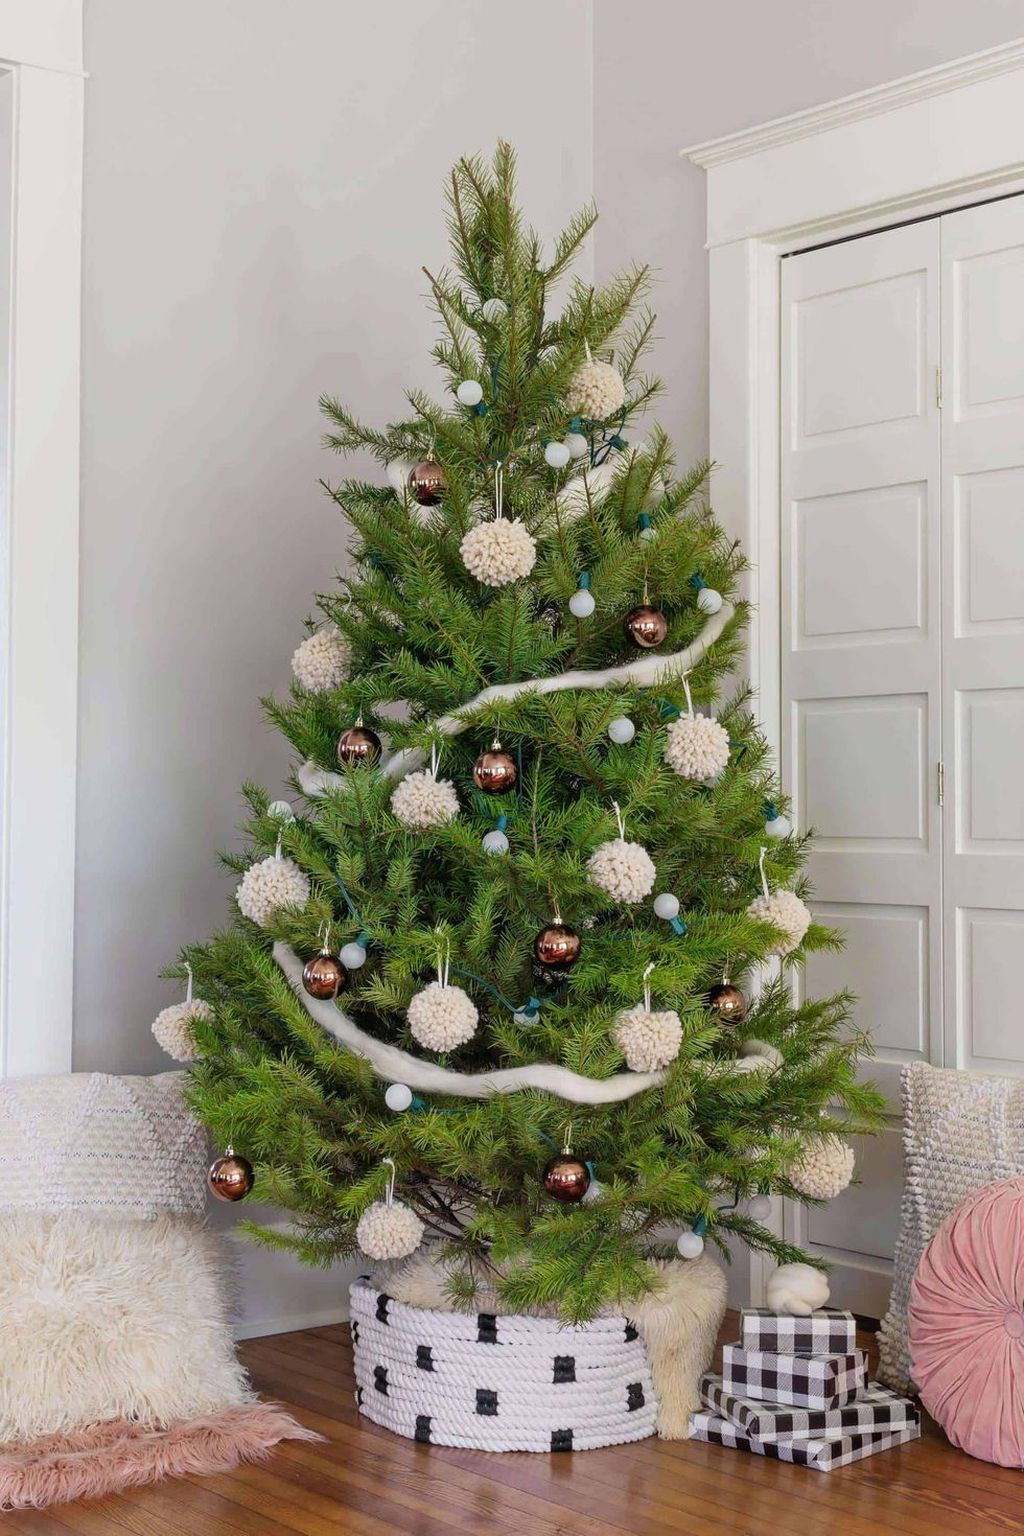 Wonderful Interior And Exterior Atmosphere Ideas For Christmas Décor To Copy04